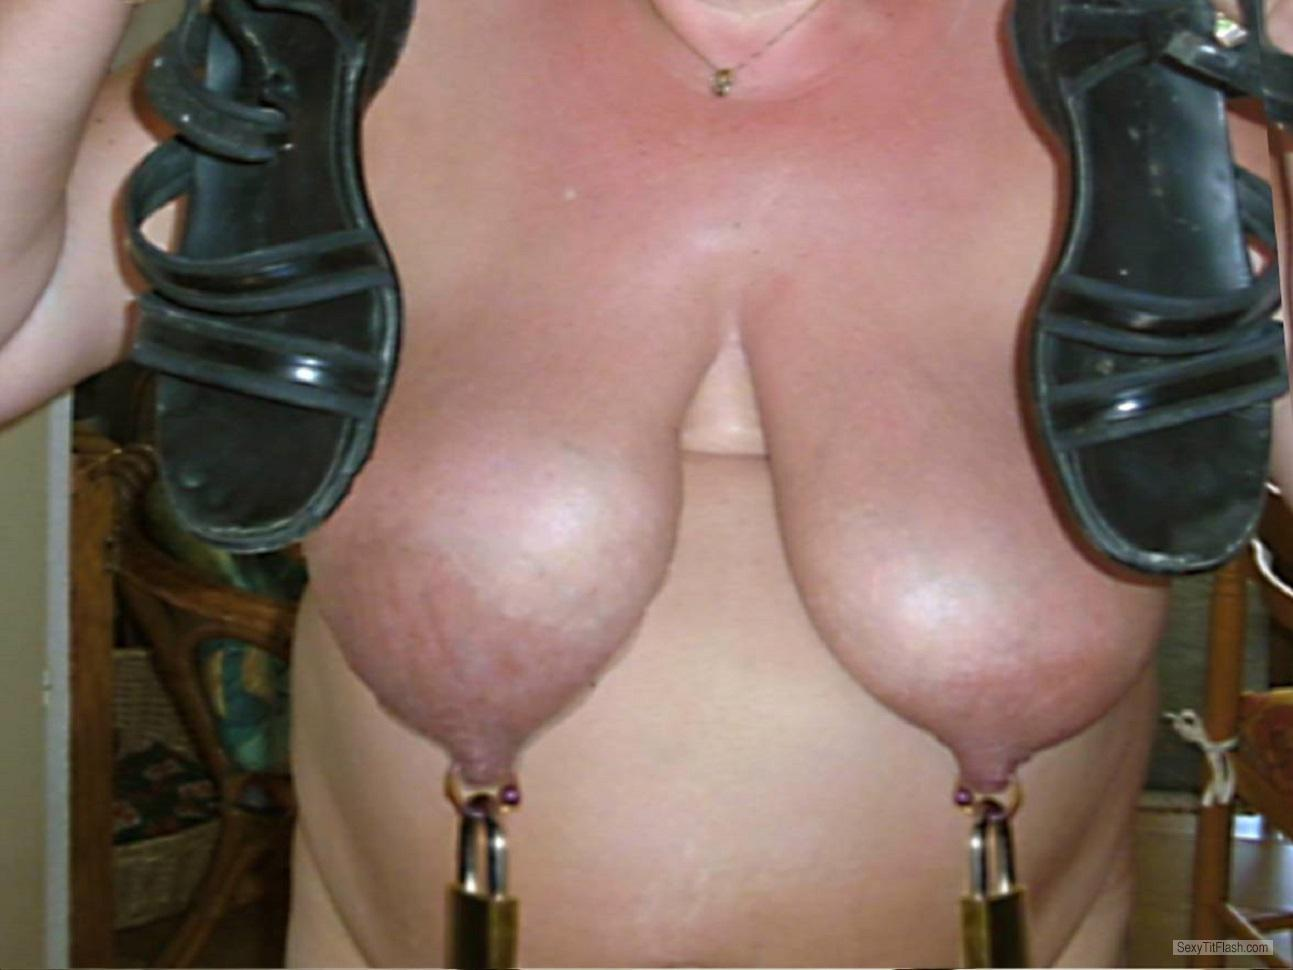 Tit Flash: My Tanlined Big Tits (Selfie) - Ich Mal Schau Mal from FrancePierced Nipples